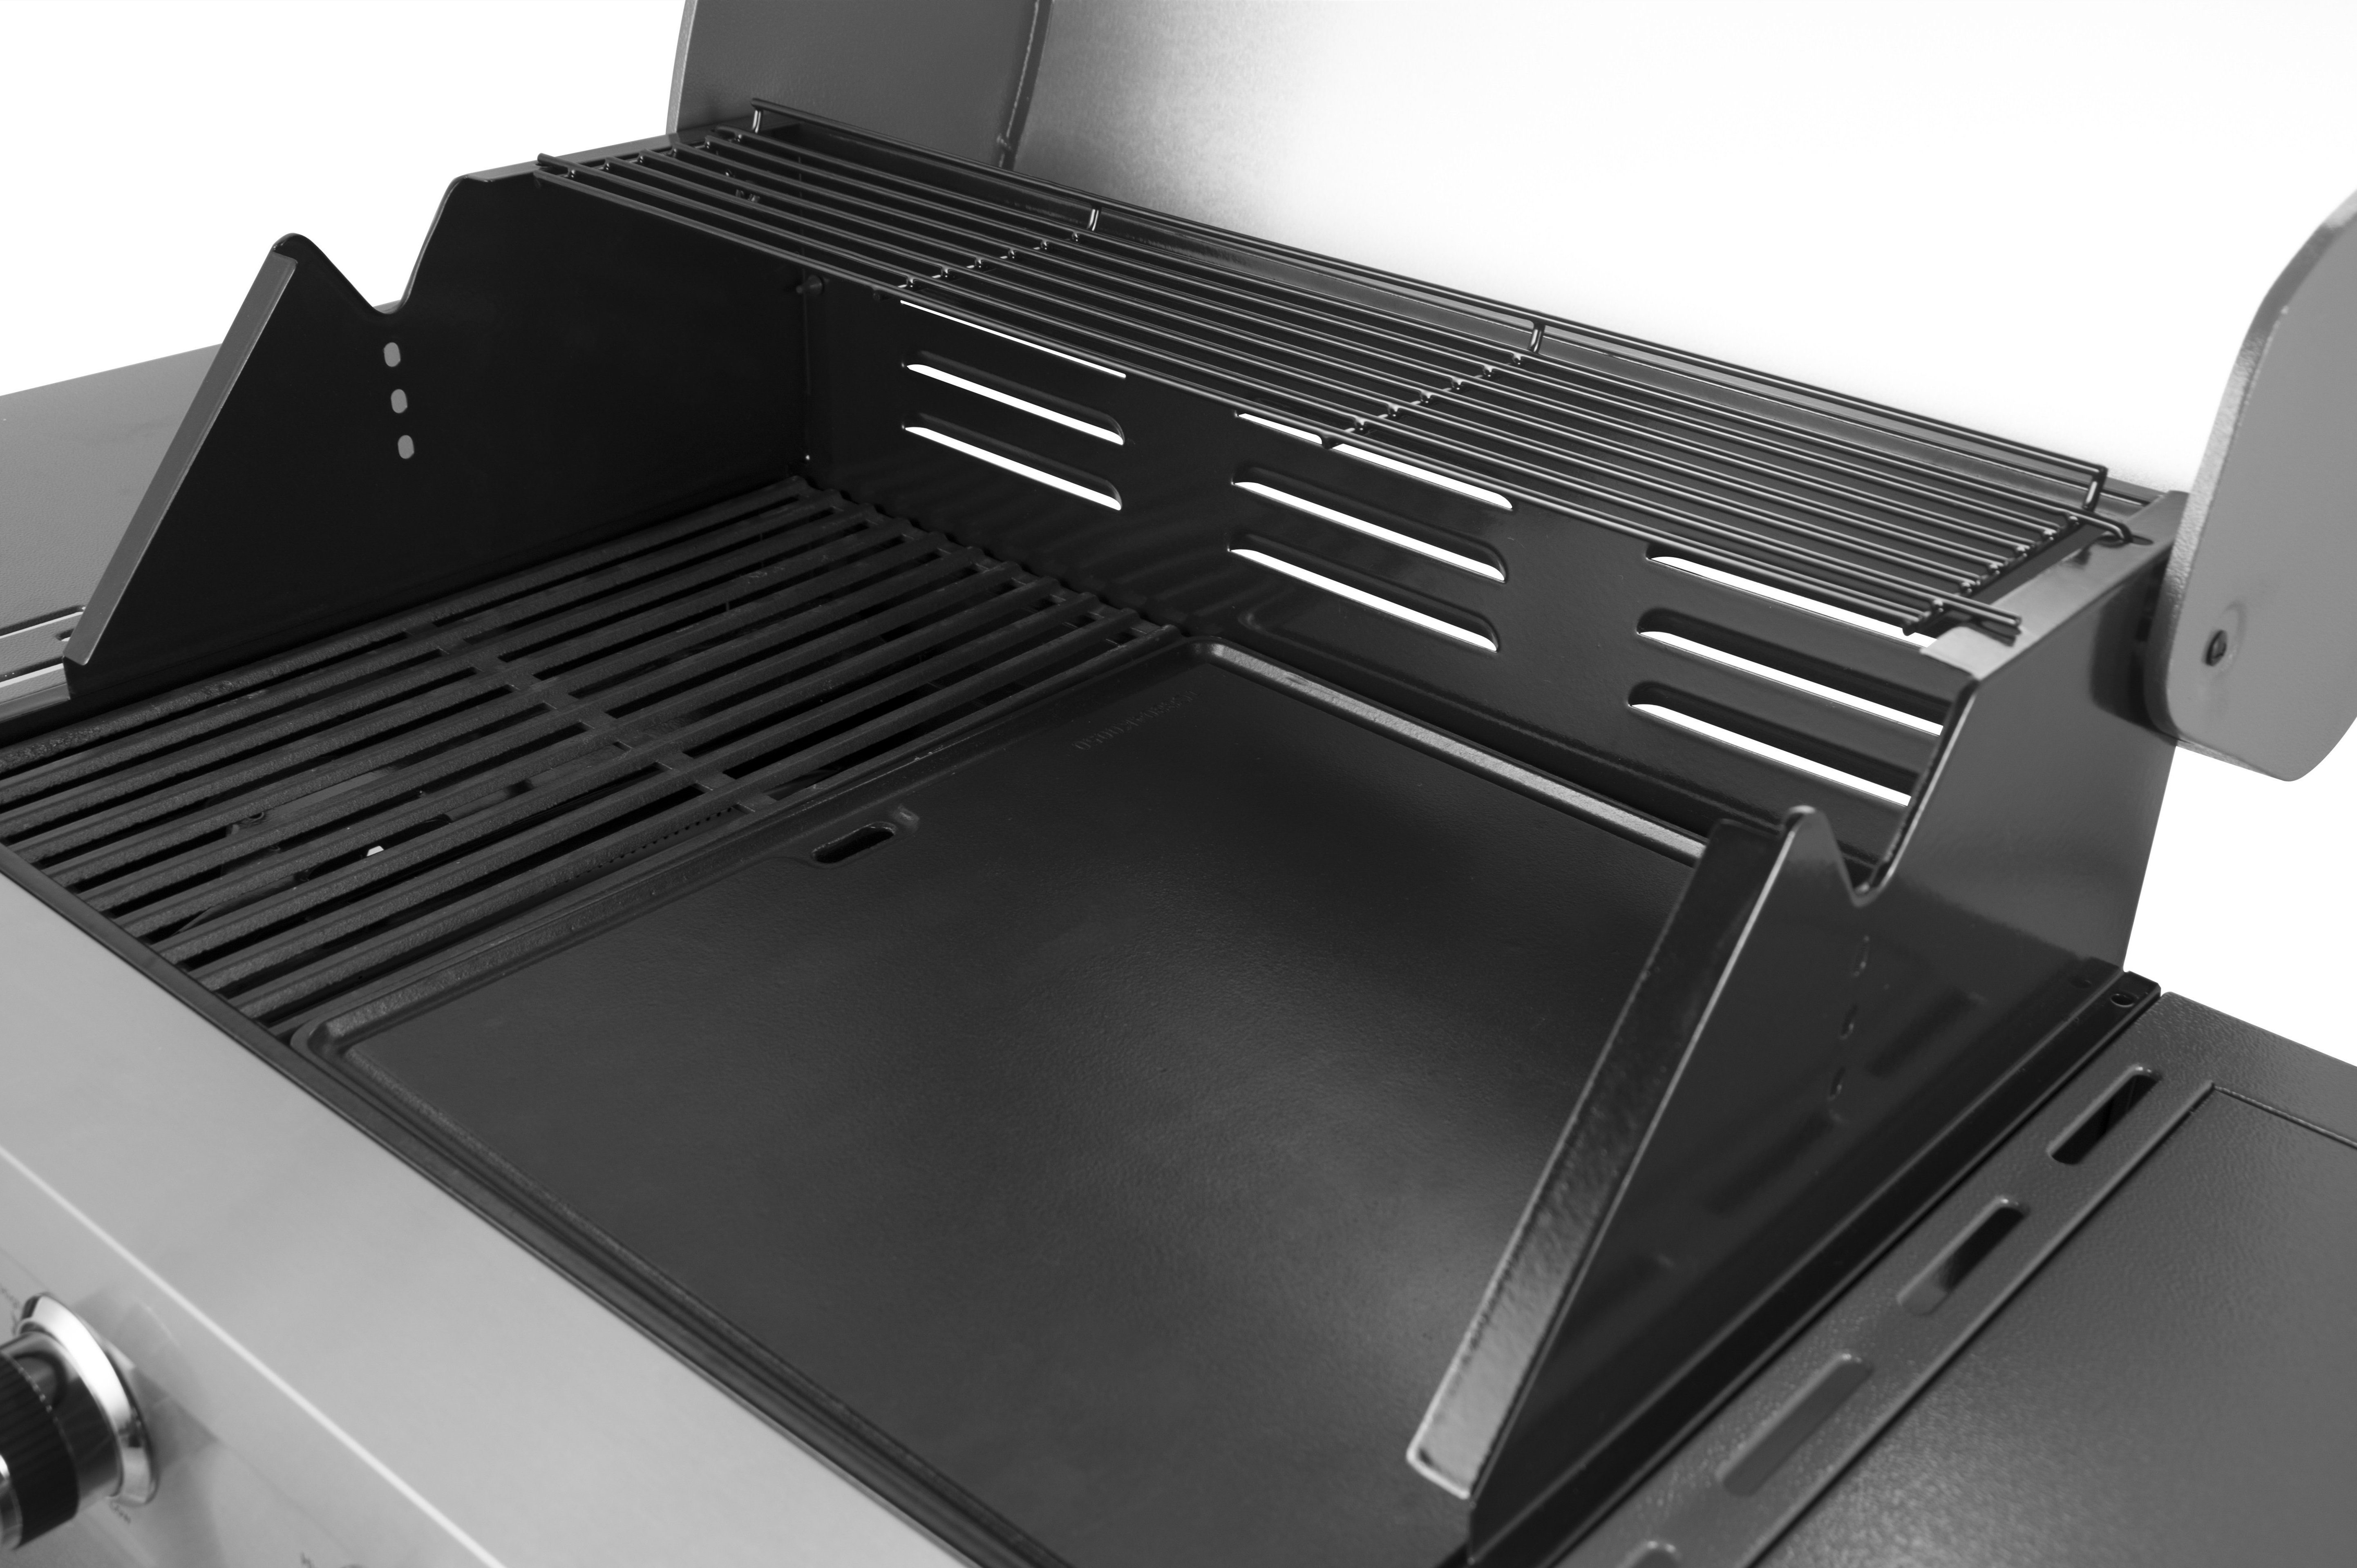 Portable Gas Grill with Cabinet